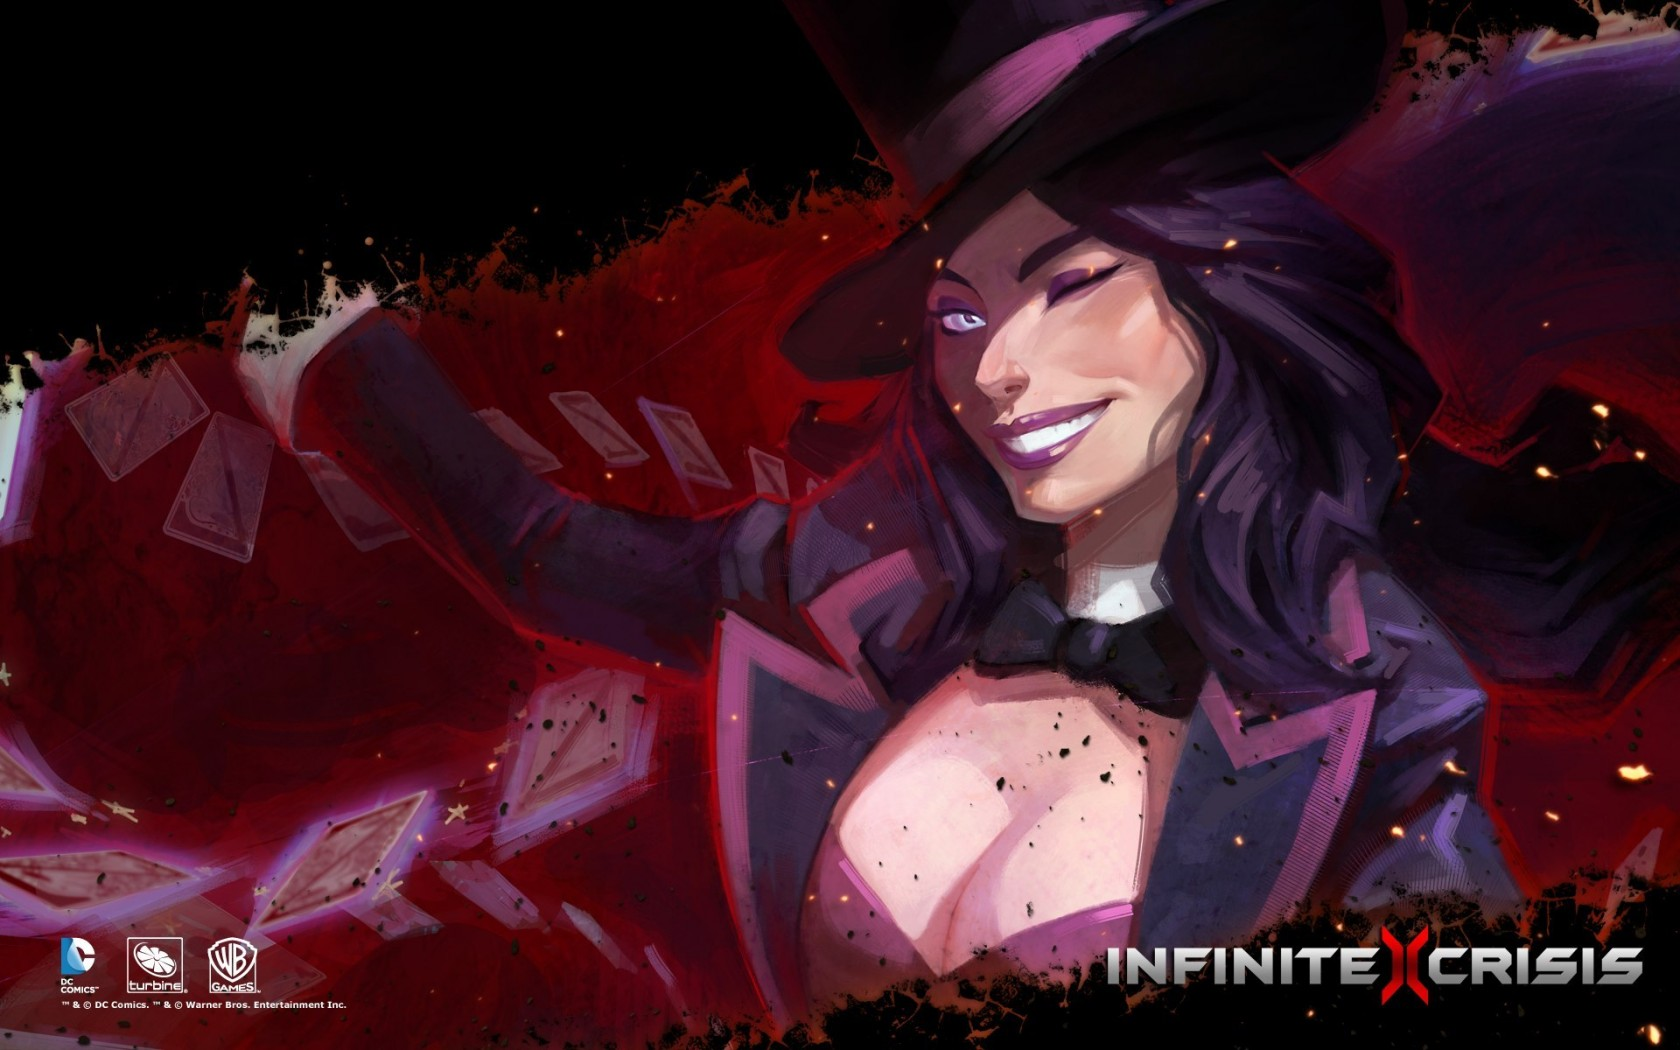 zatanna dc wallpaper - photo #5